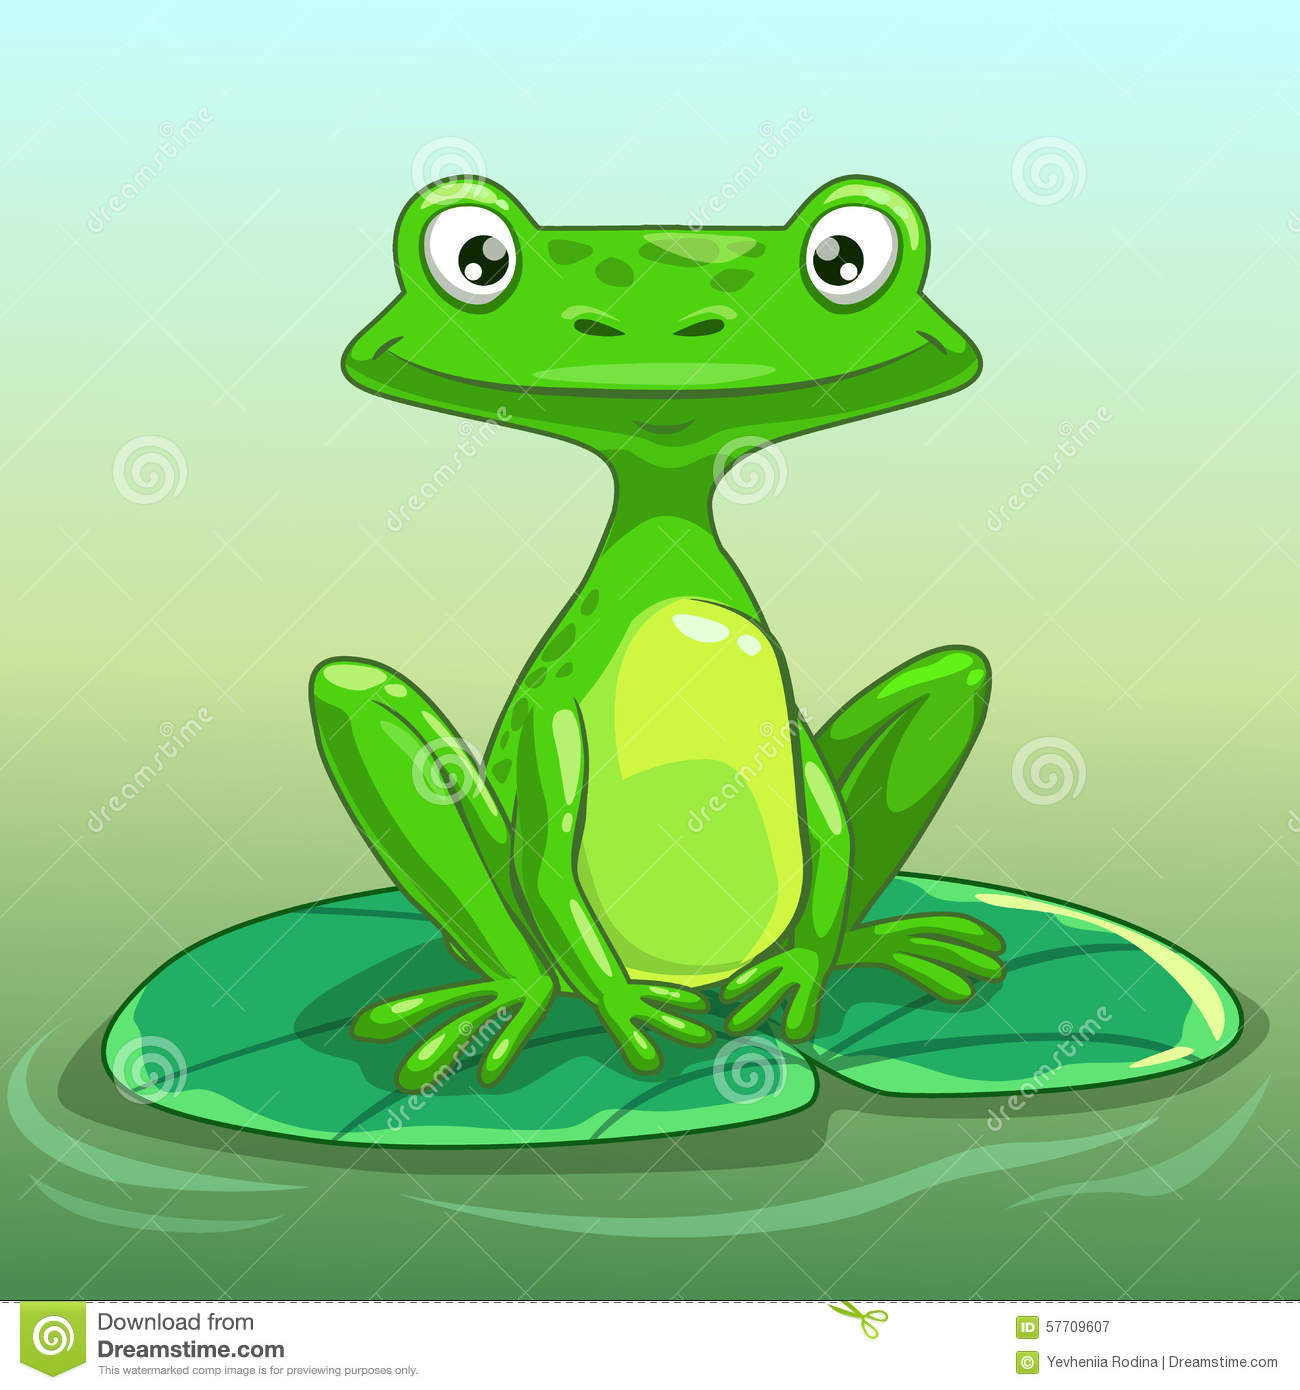 Funny Cartoon Frog Stock Illustration - Image: 57709607